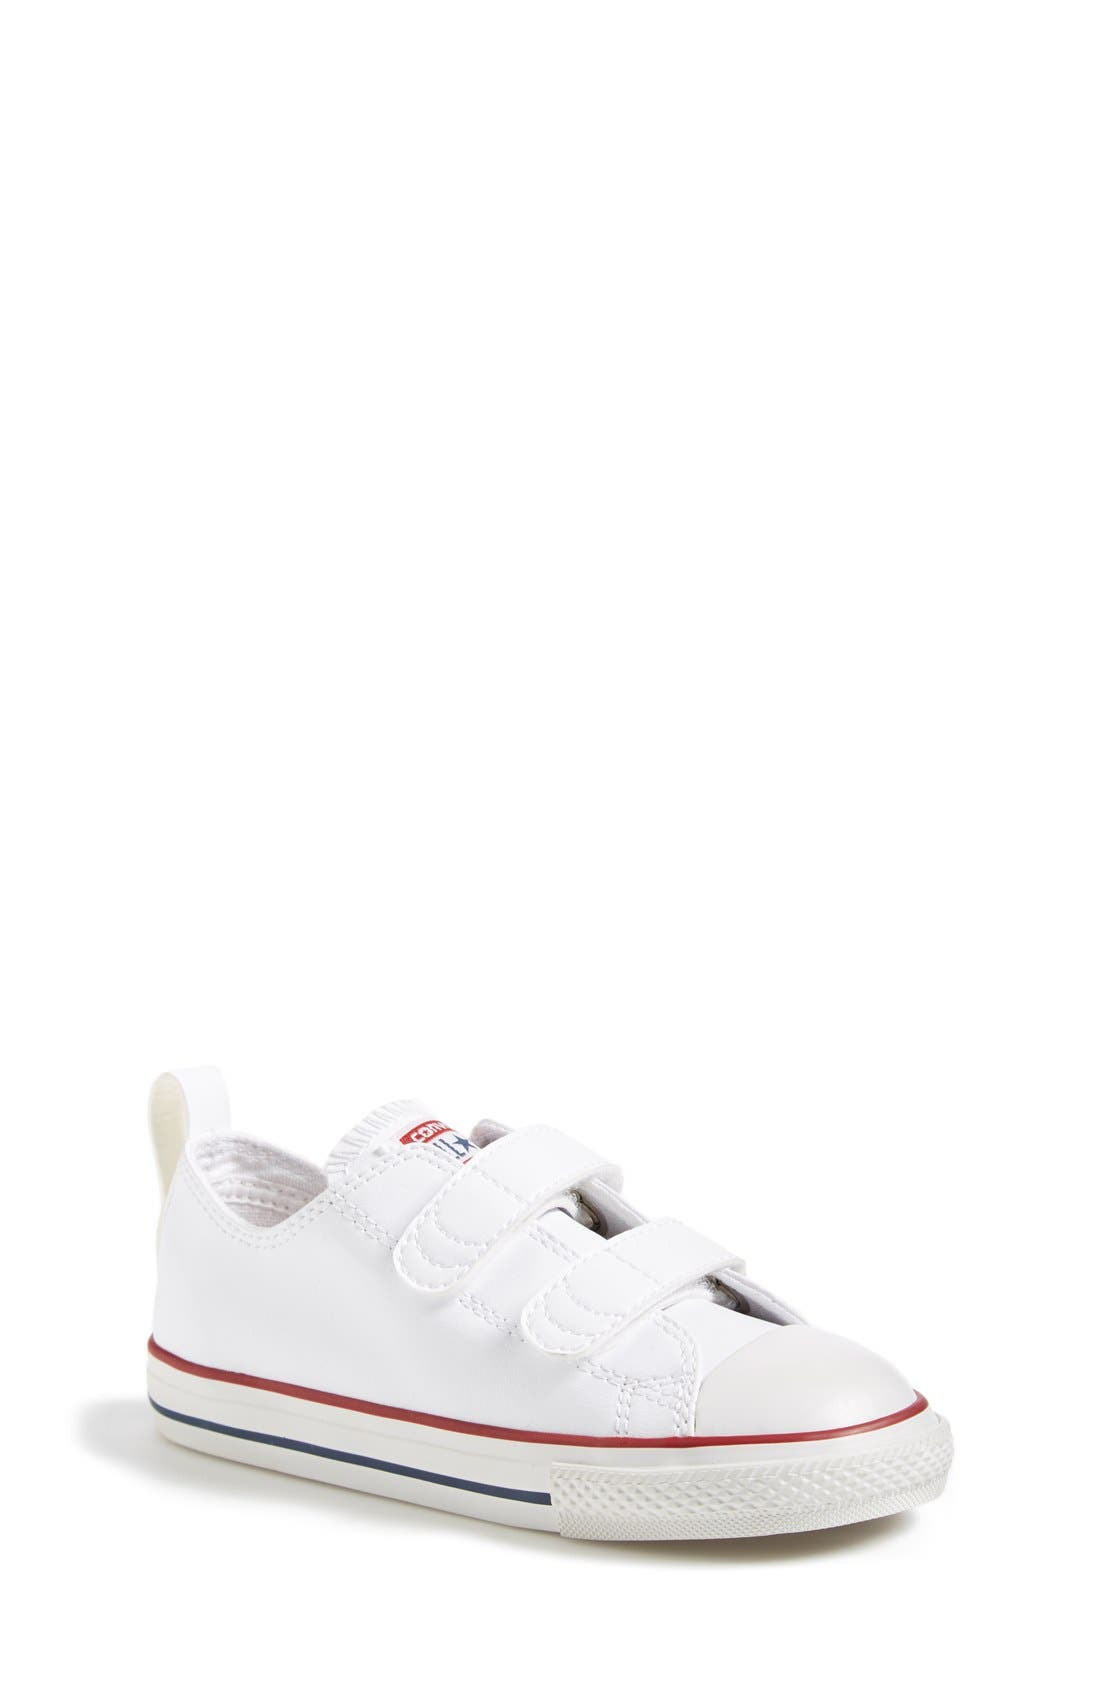 CONVERSE,                             Chuck Taylor<sup>®</sup> All Star<sup>®</sup> 2V Faux Leather Sneaker,                             Main thumbnail 1, color,                             WHITE